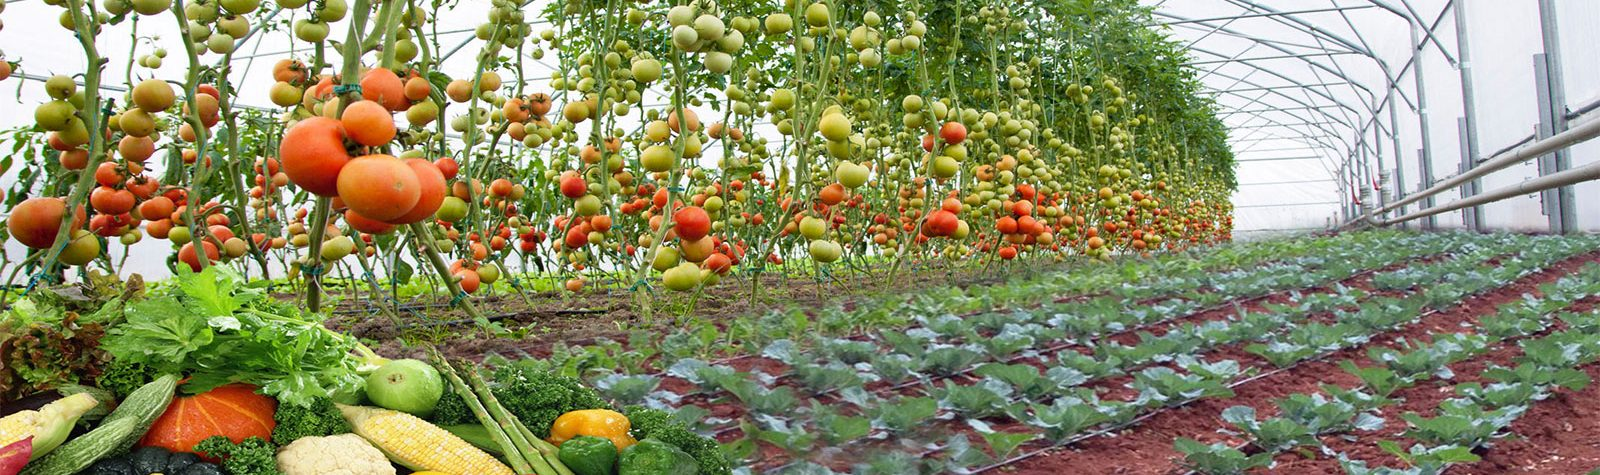 crop protection in kenya, tomato insects protection, foliar fertilizers in kenya